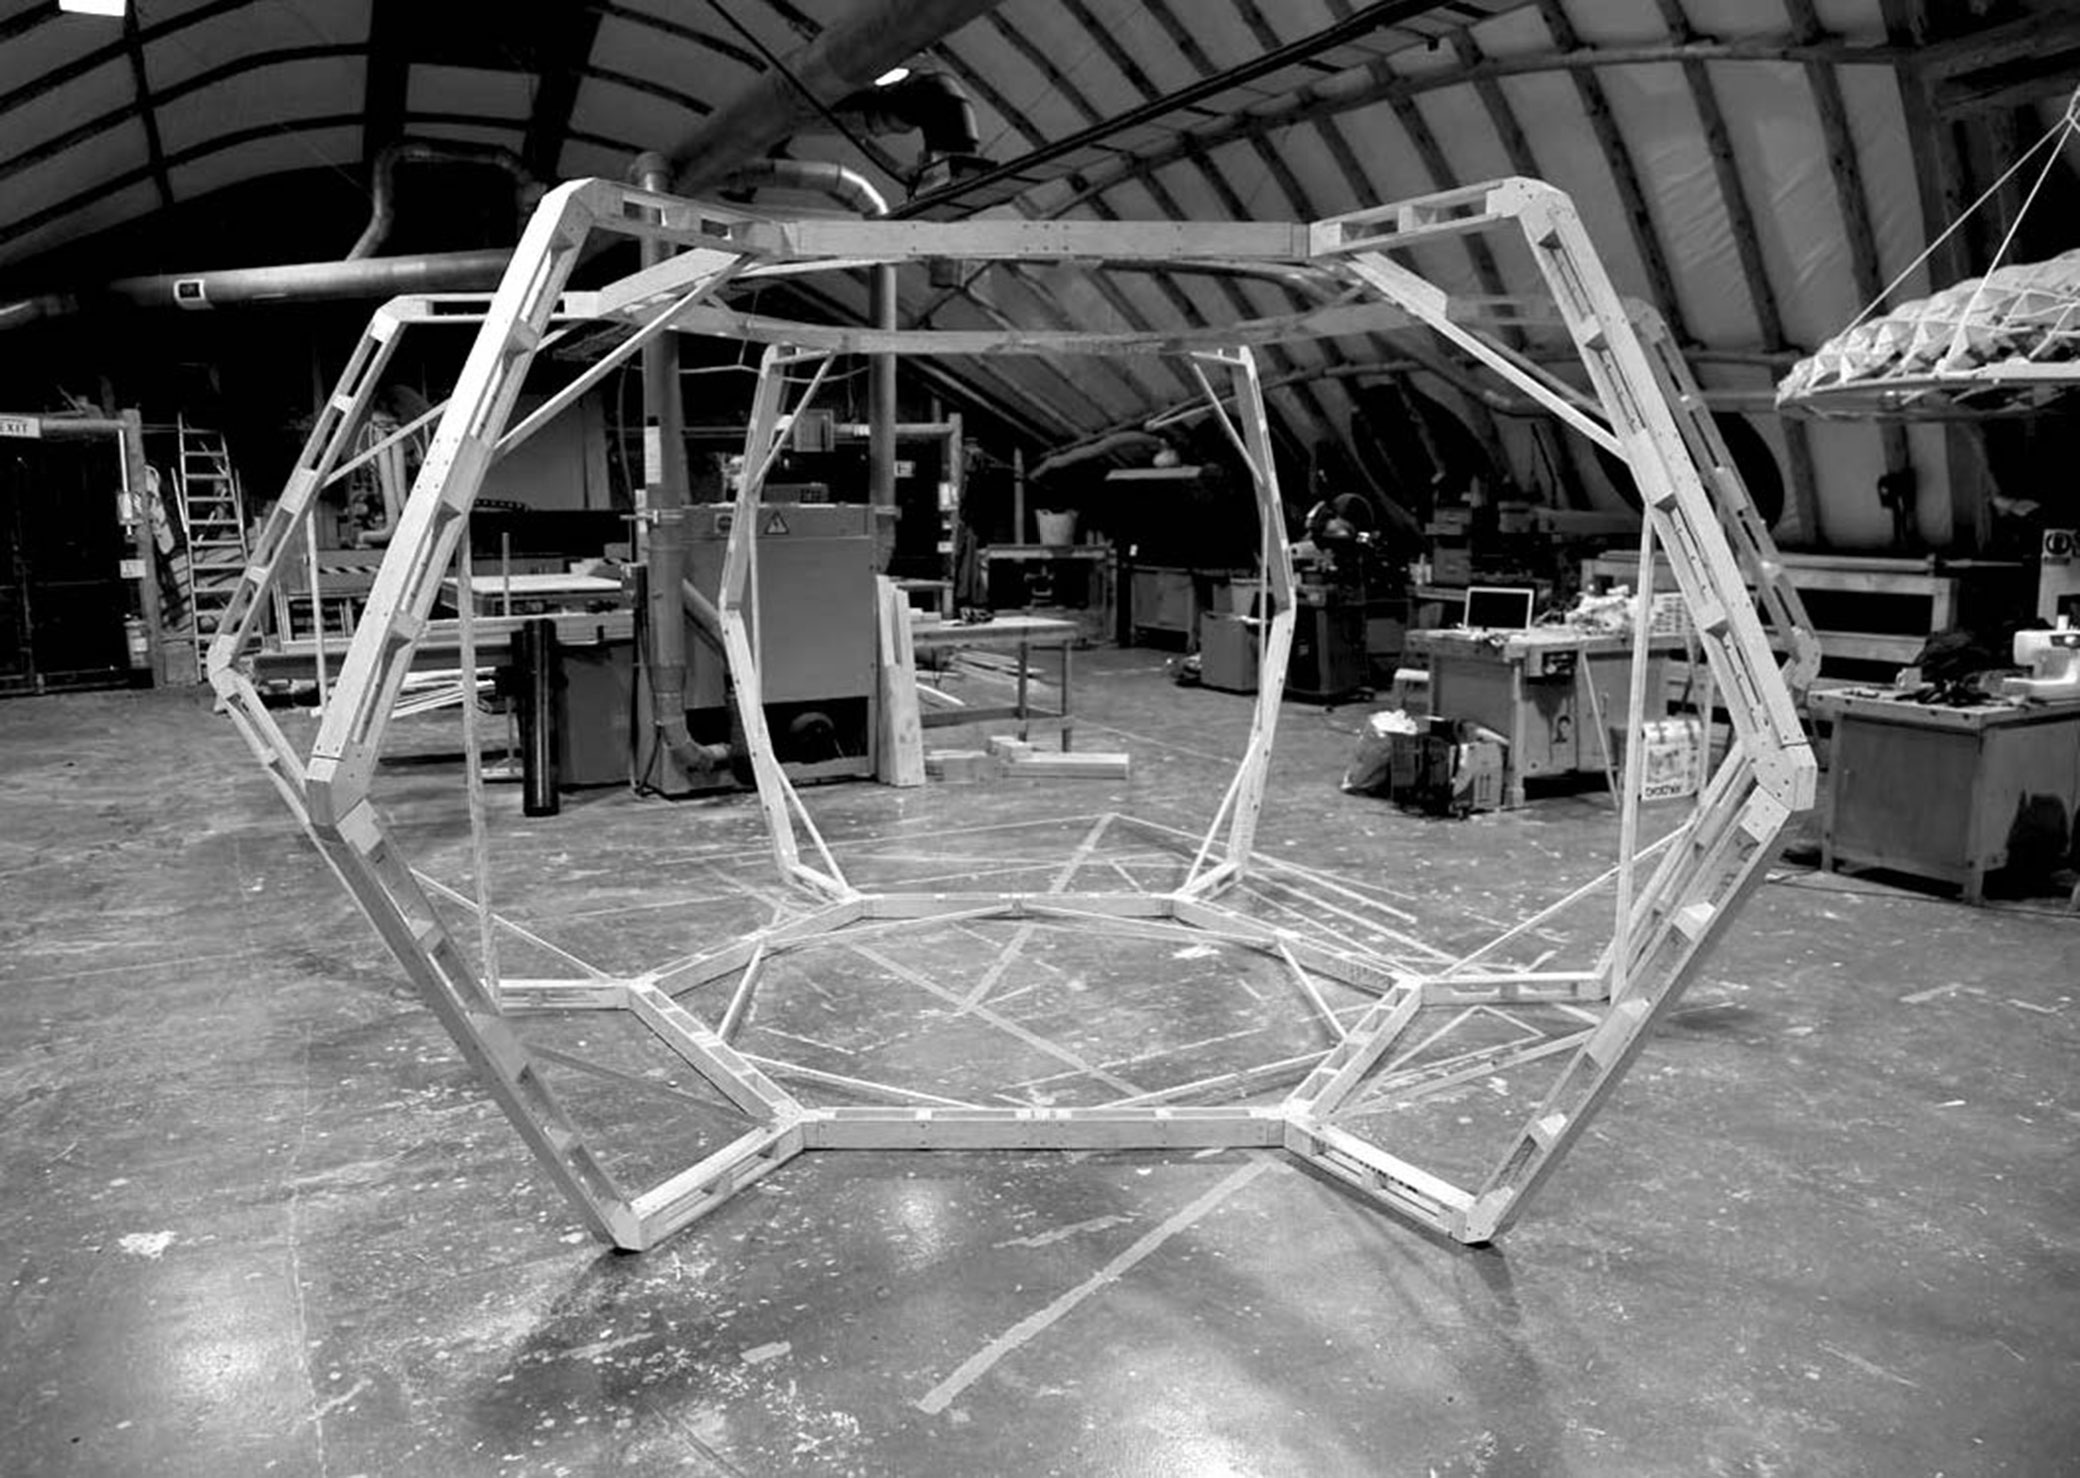 HEXAPODS: A New Vernacular Architecture